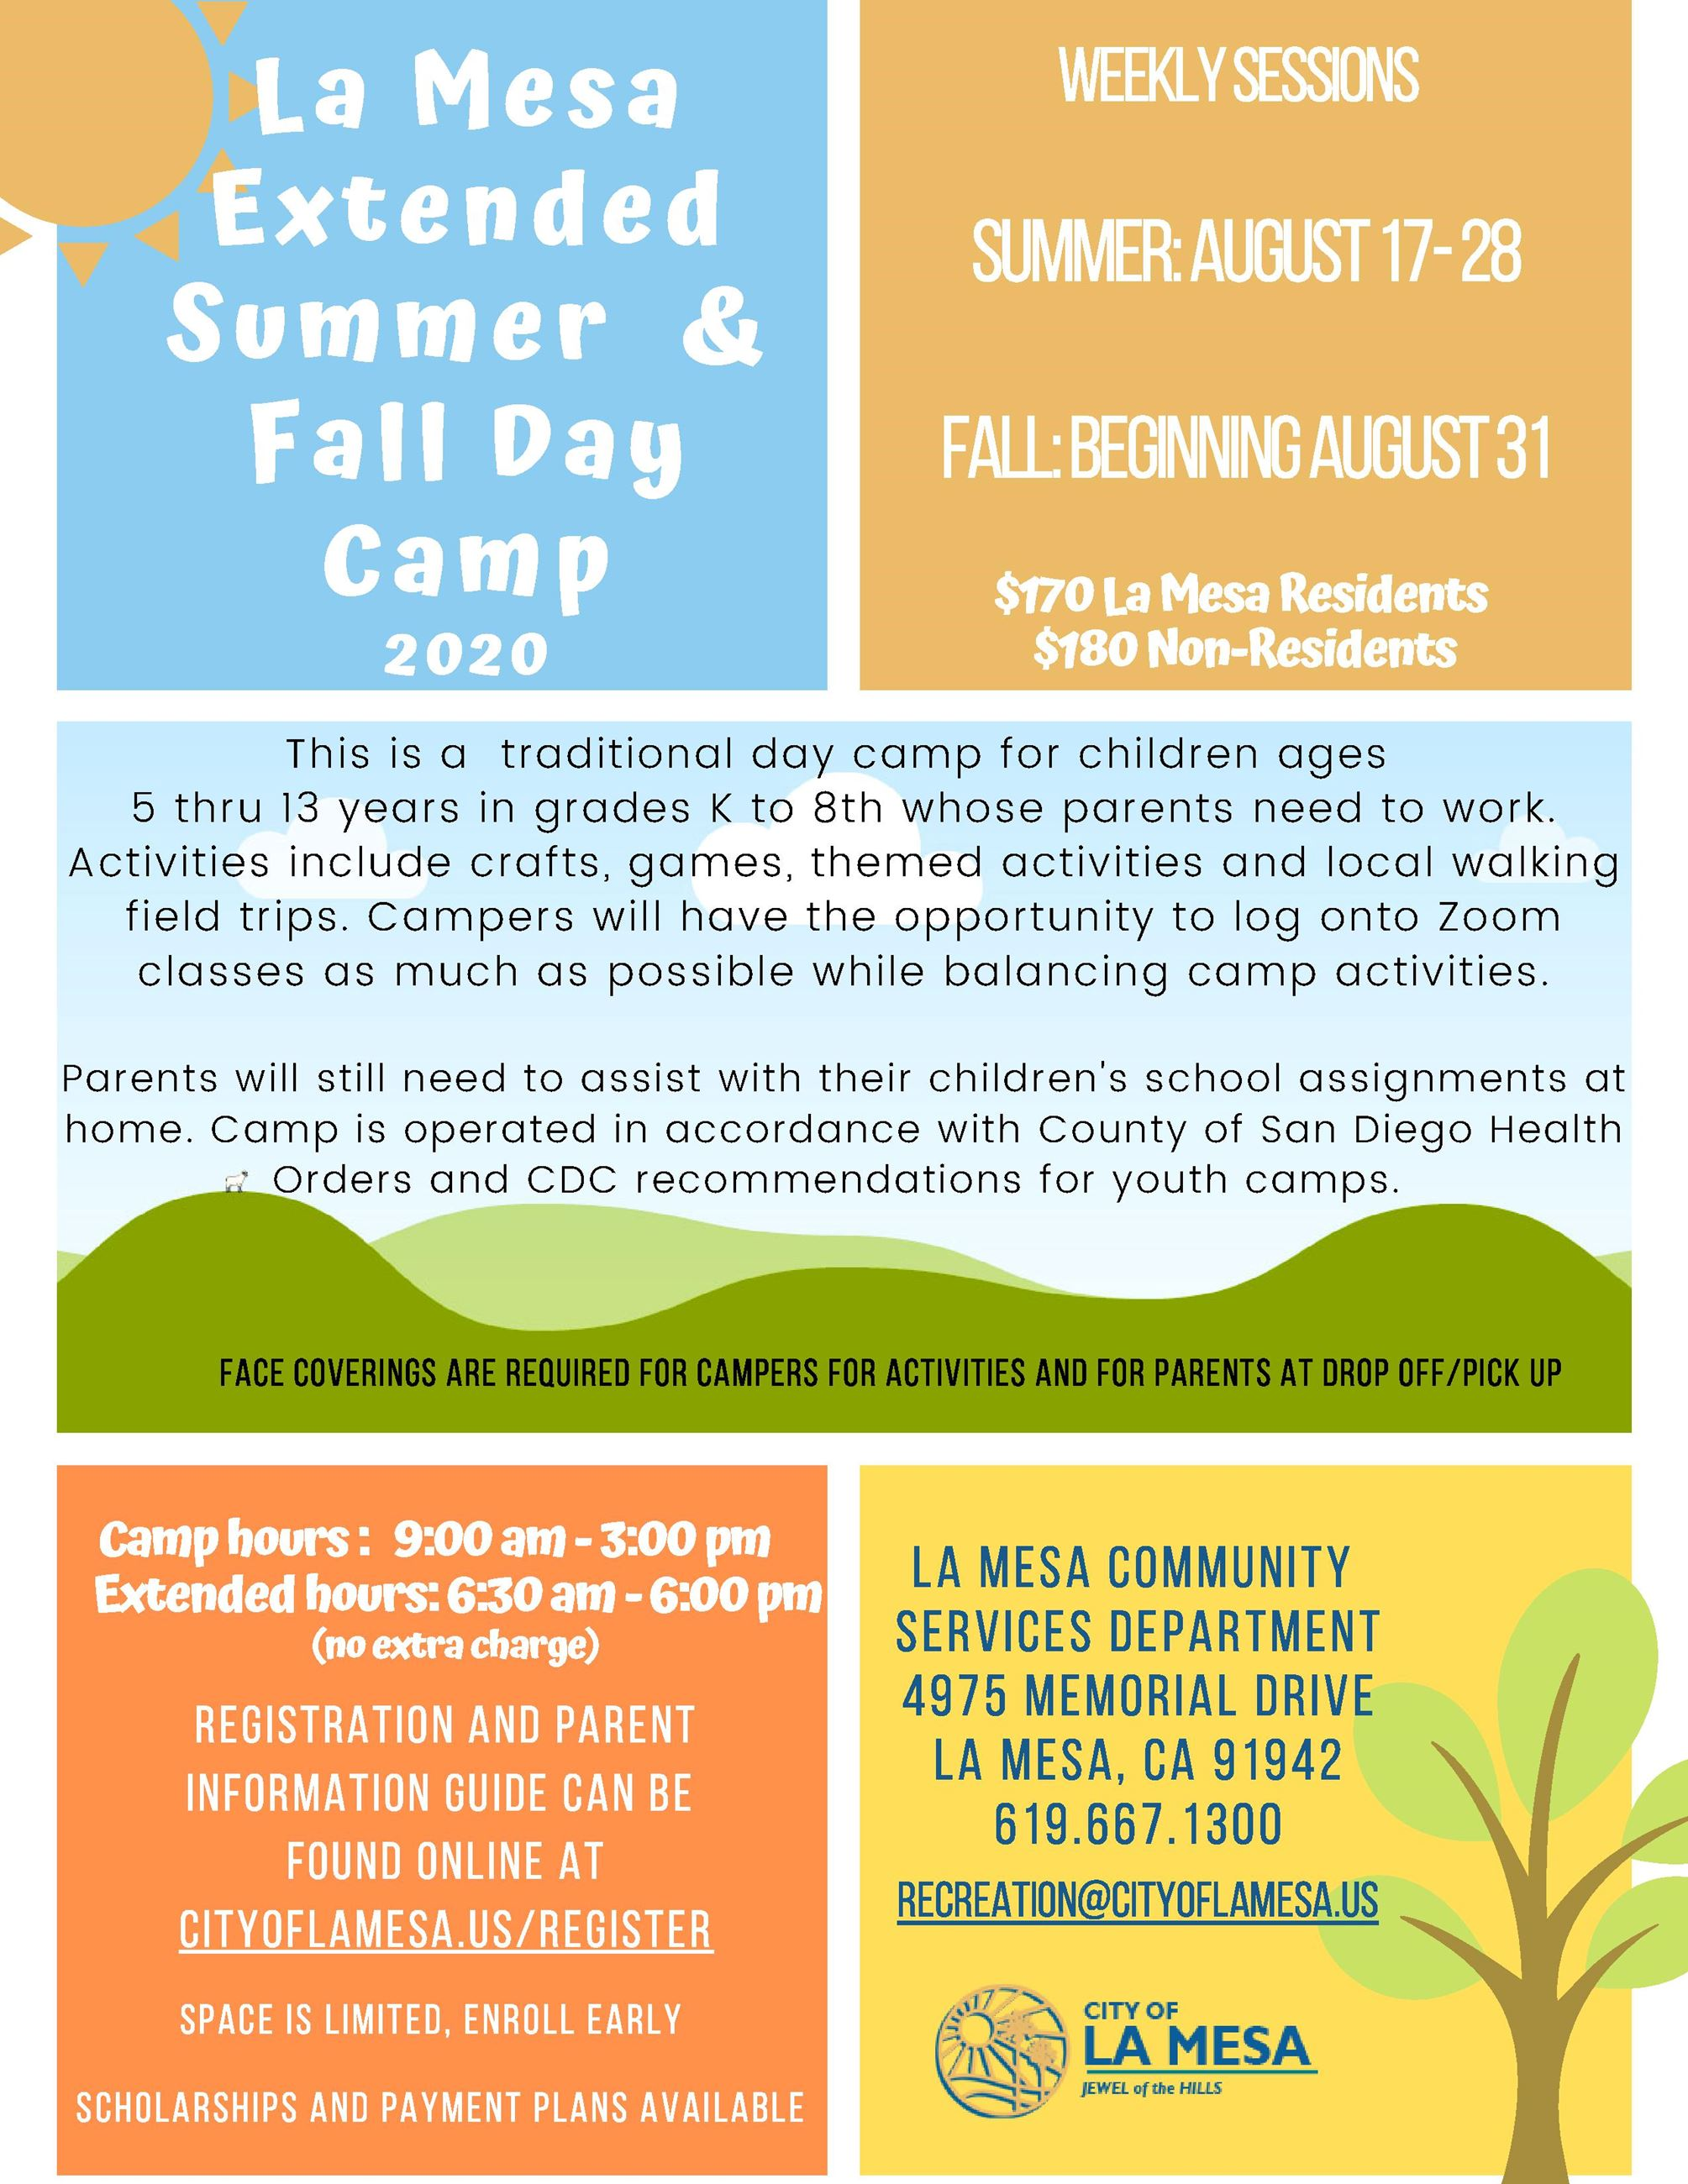 Summer extended and fall day Camp 2020  (2)